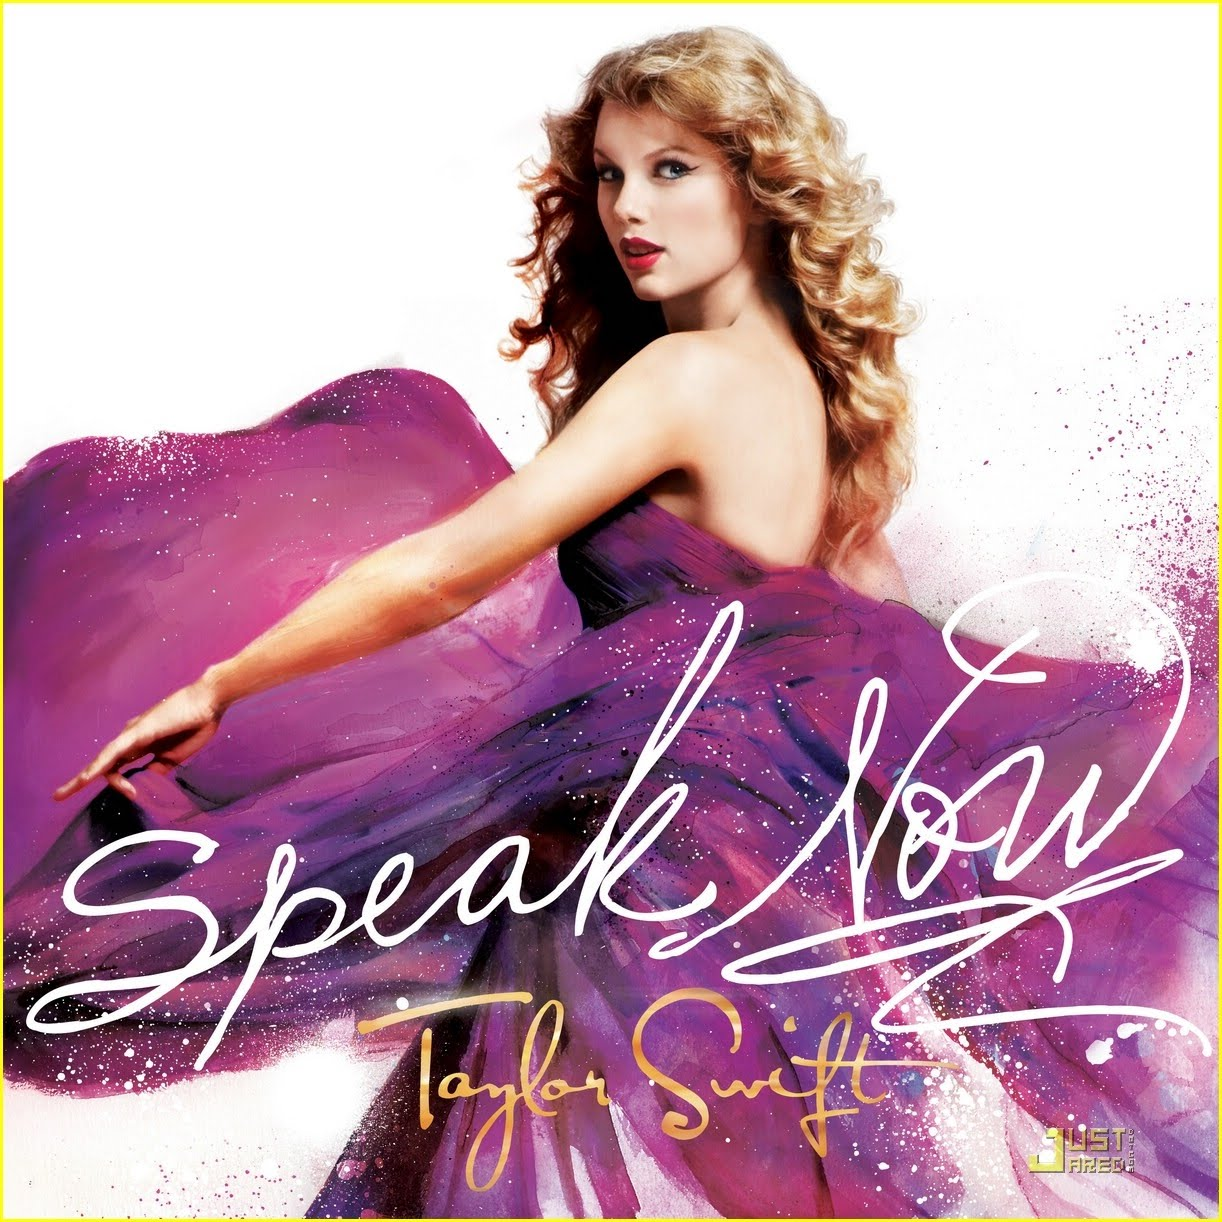 http://4.bp.blogspot.com/_tKm-K_V0Wb4/TT4mkAy3ulI/AAAAAAAABeo/fyGAaBp3Yzk/s1600/taylor-swift-speak-now-01.JPG